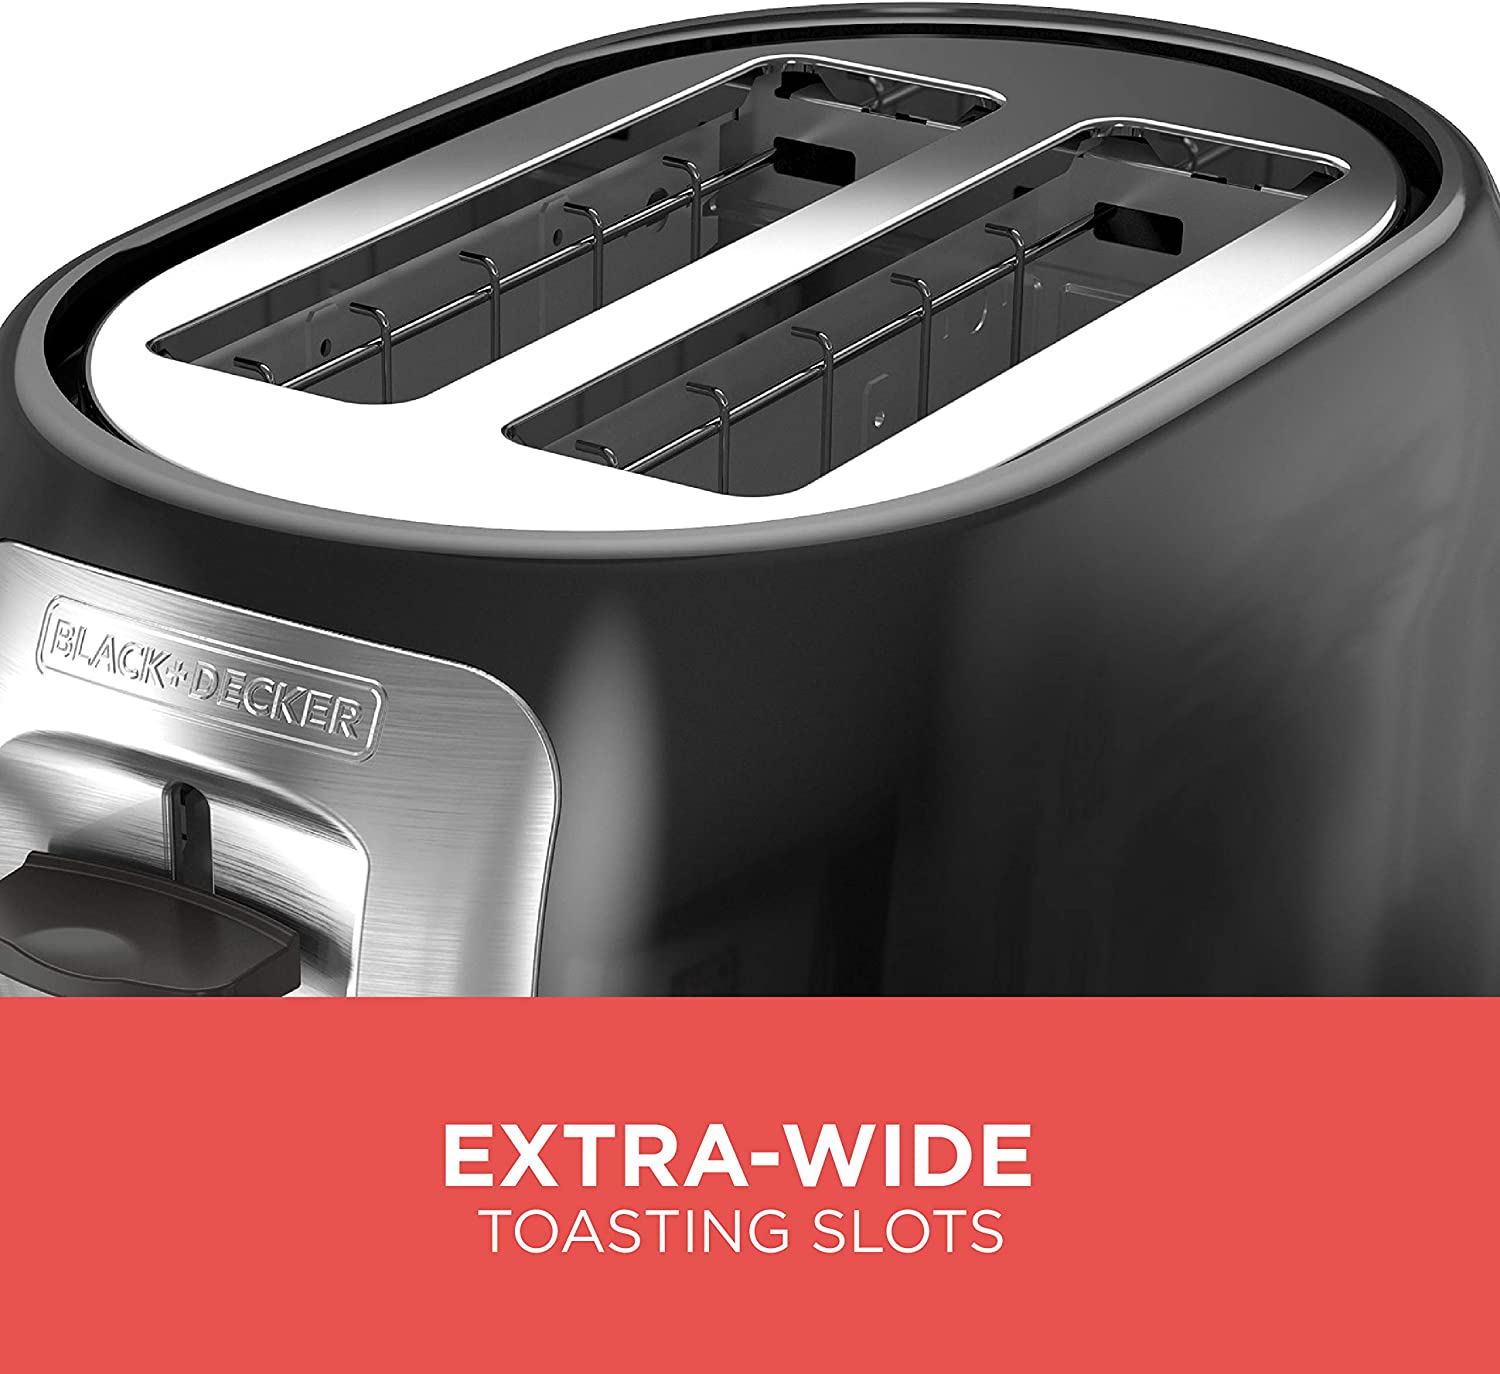 BLACK+DECKER 2-Slice Extra Wide Slot Toaster Classic Oval Black with Stainless